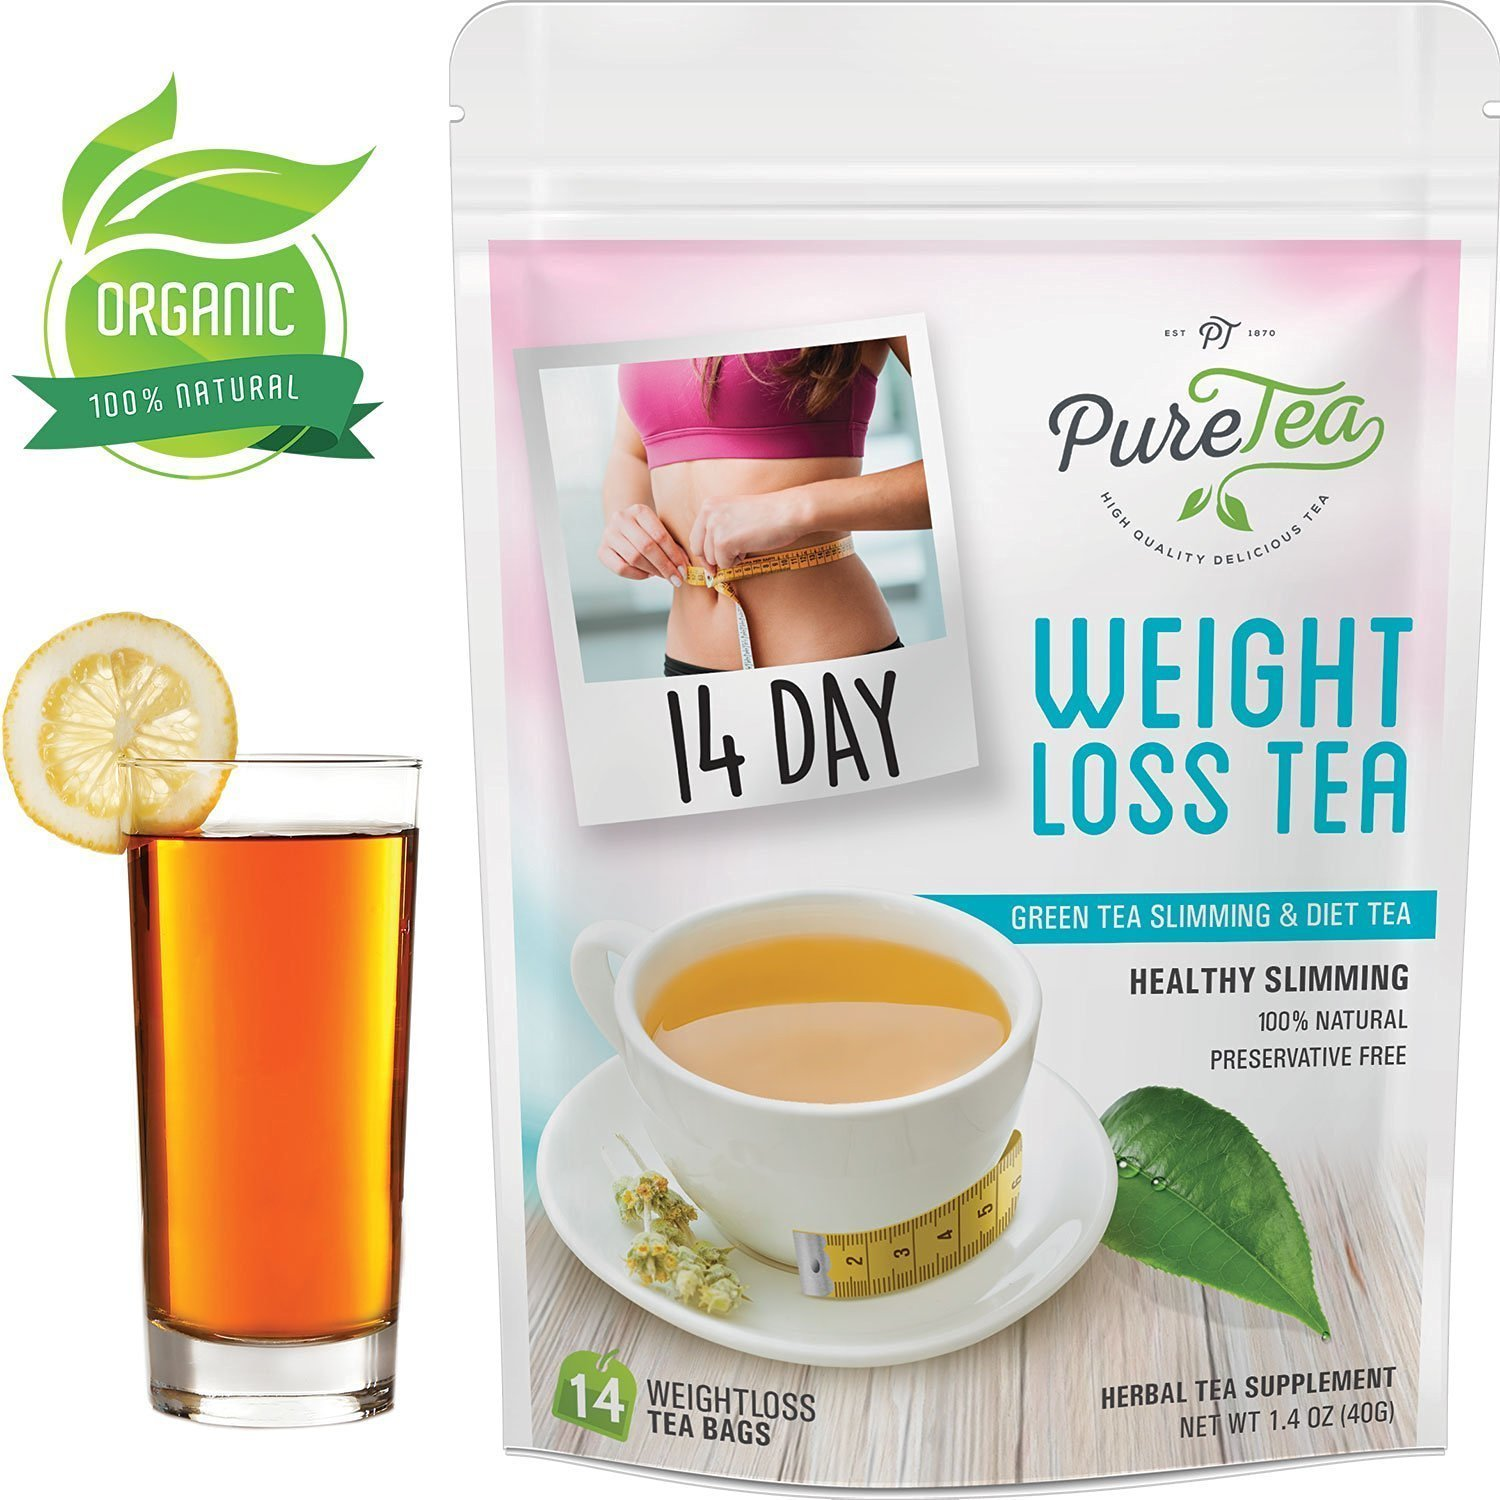 Slimming tea: reviews and safe composition of the product 33